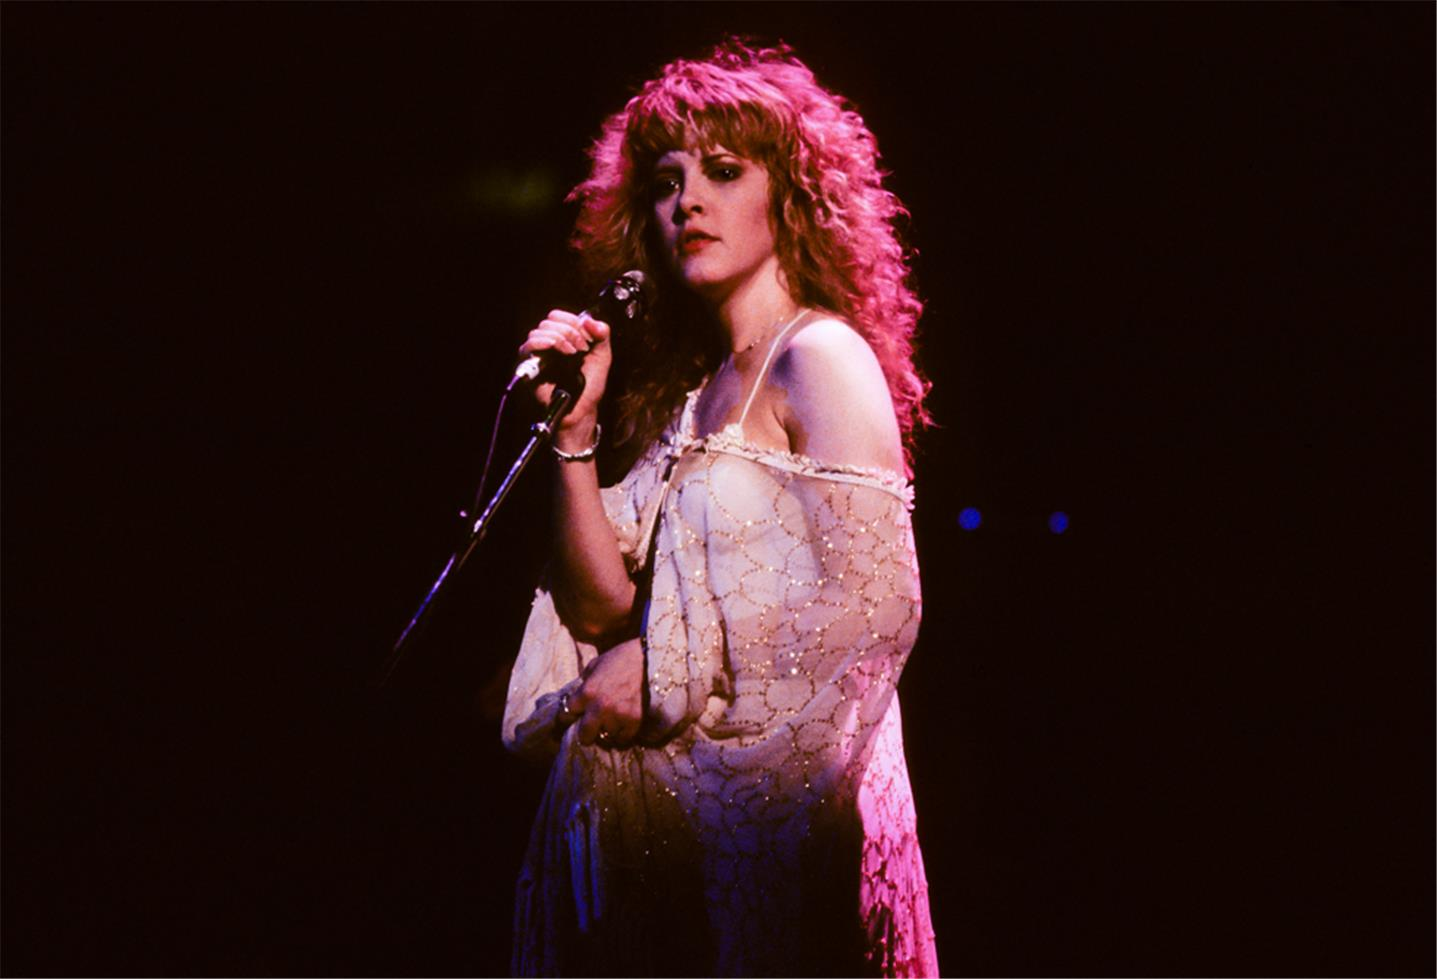 O estilo de Stevie Nicks no palco.